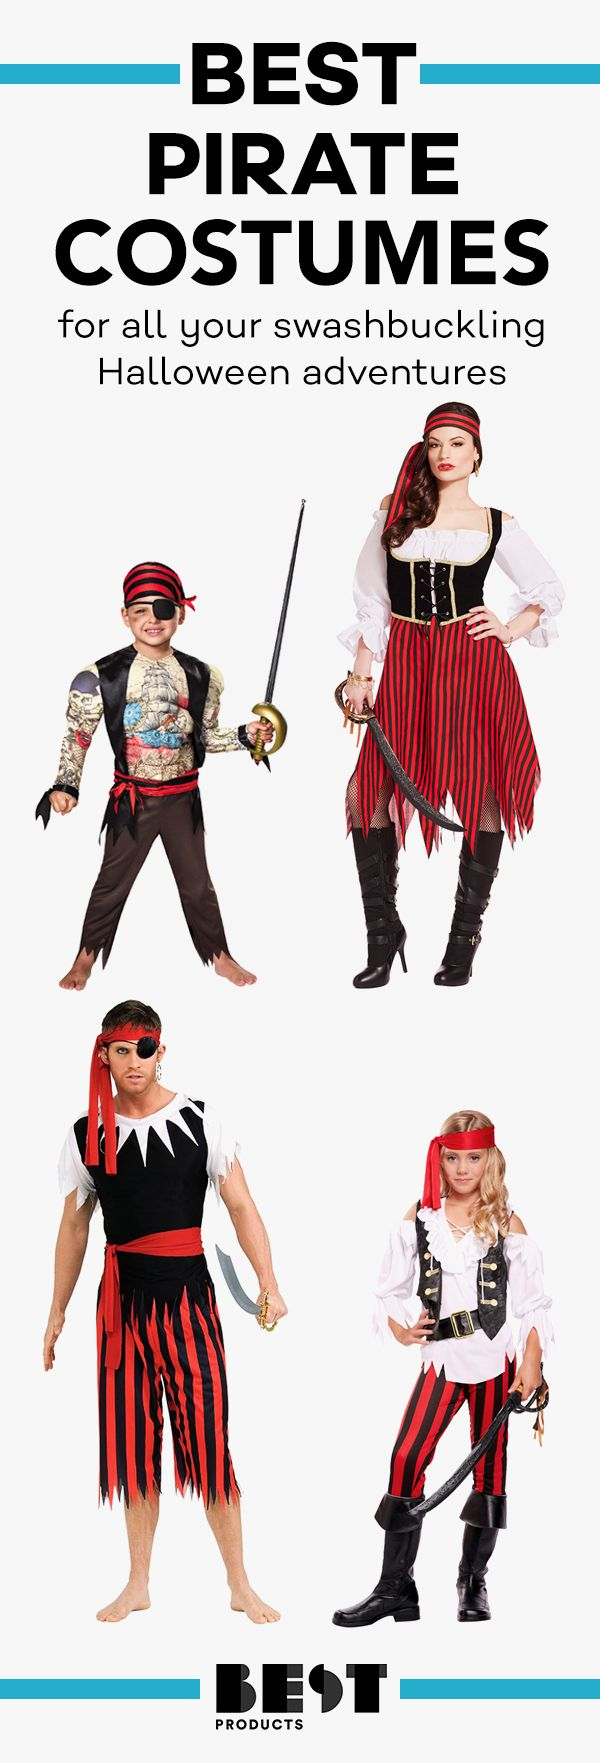 e76fd333a 12 Best Pirate Costumes for Kids & Adults in 2018 - Pirate Halloween  Costumes